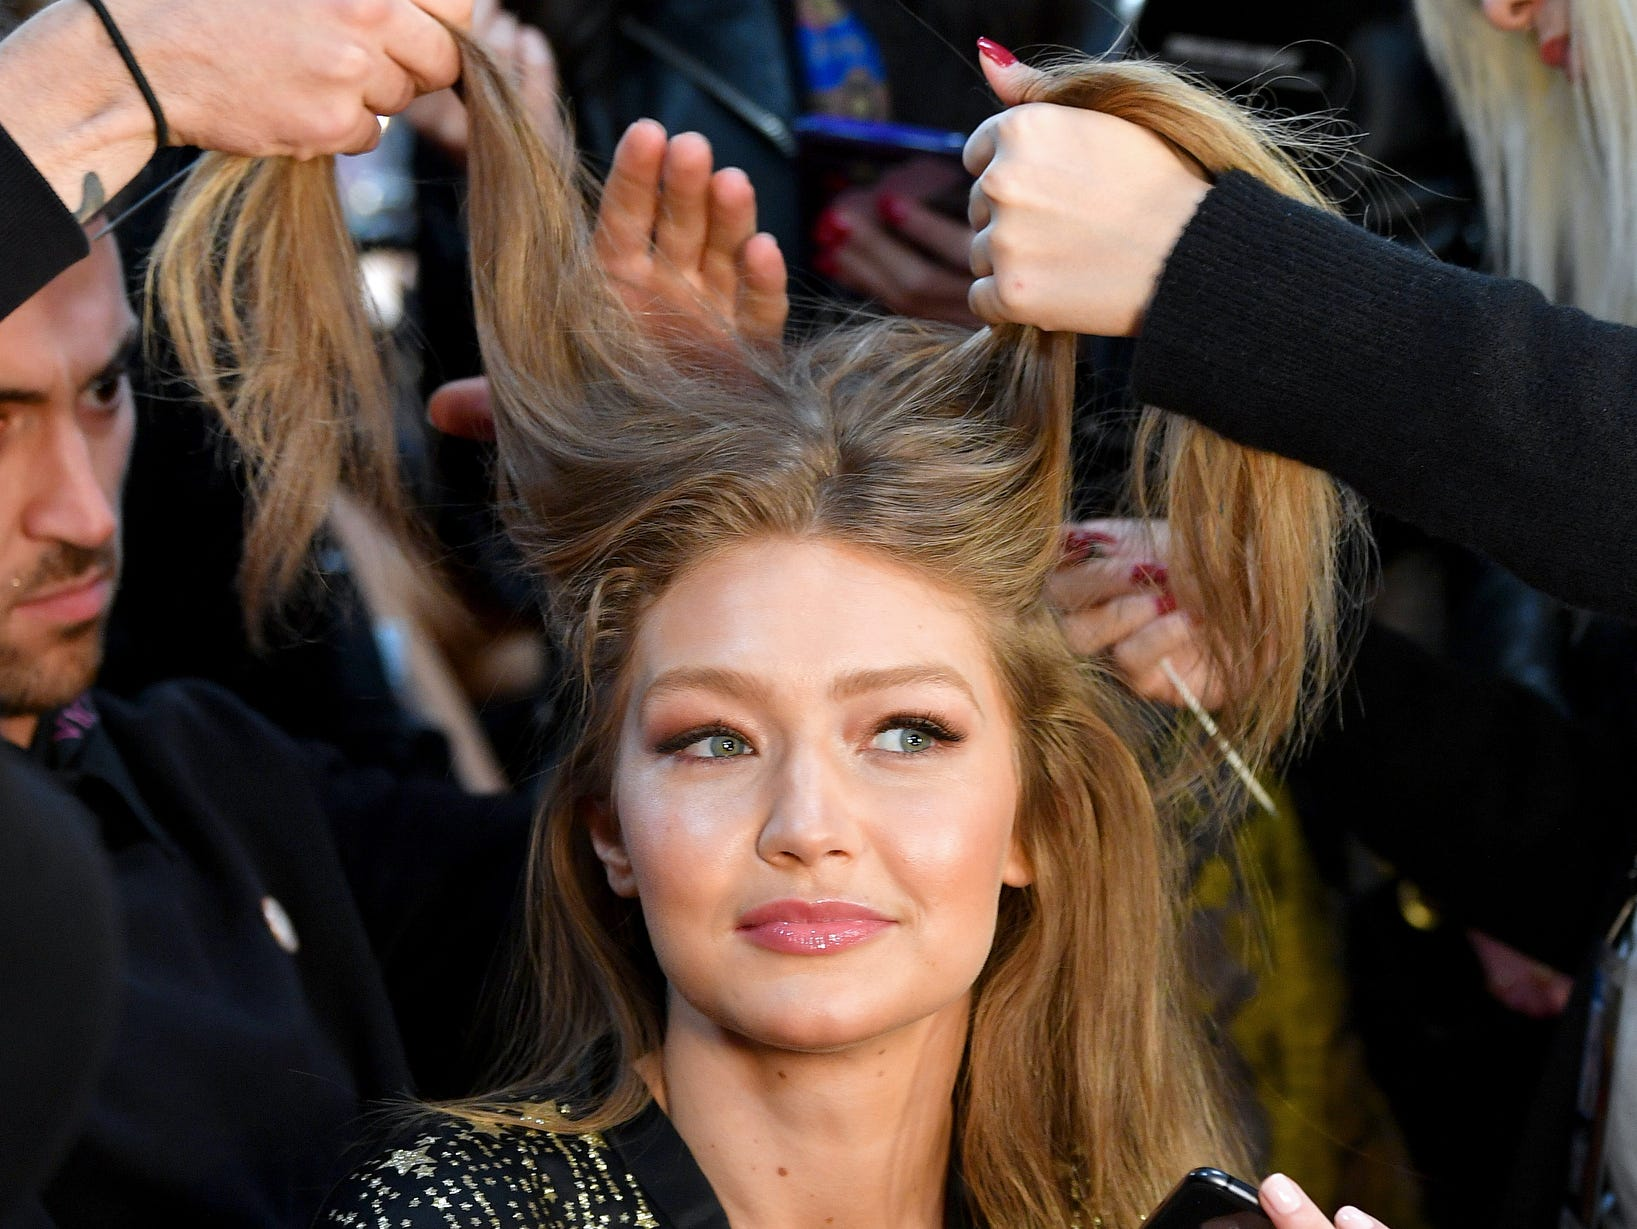 Gigi Hadid gets hair care backstage.